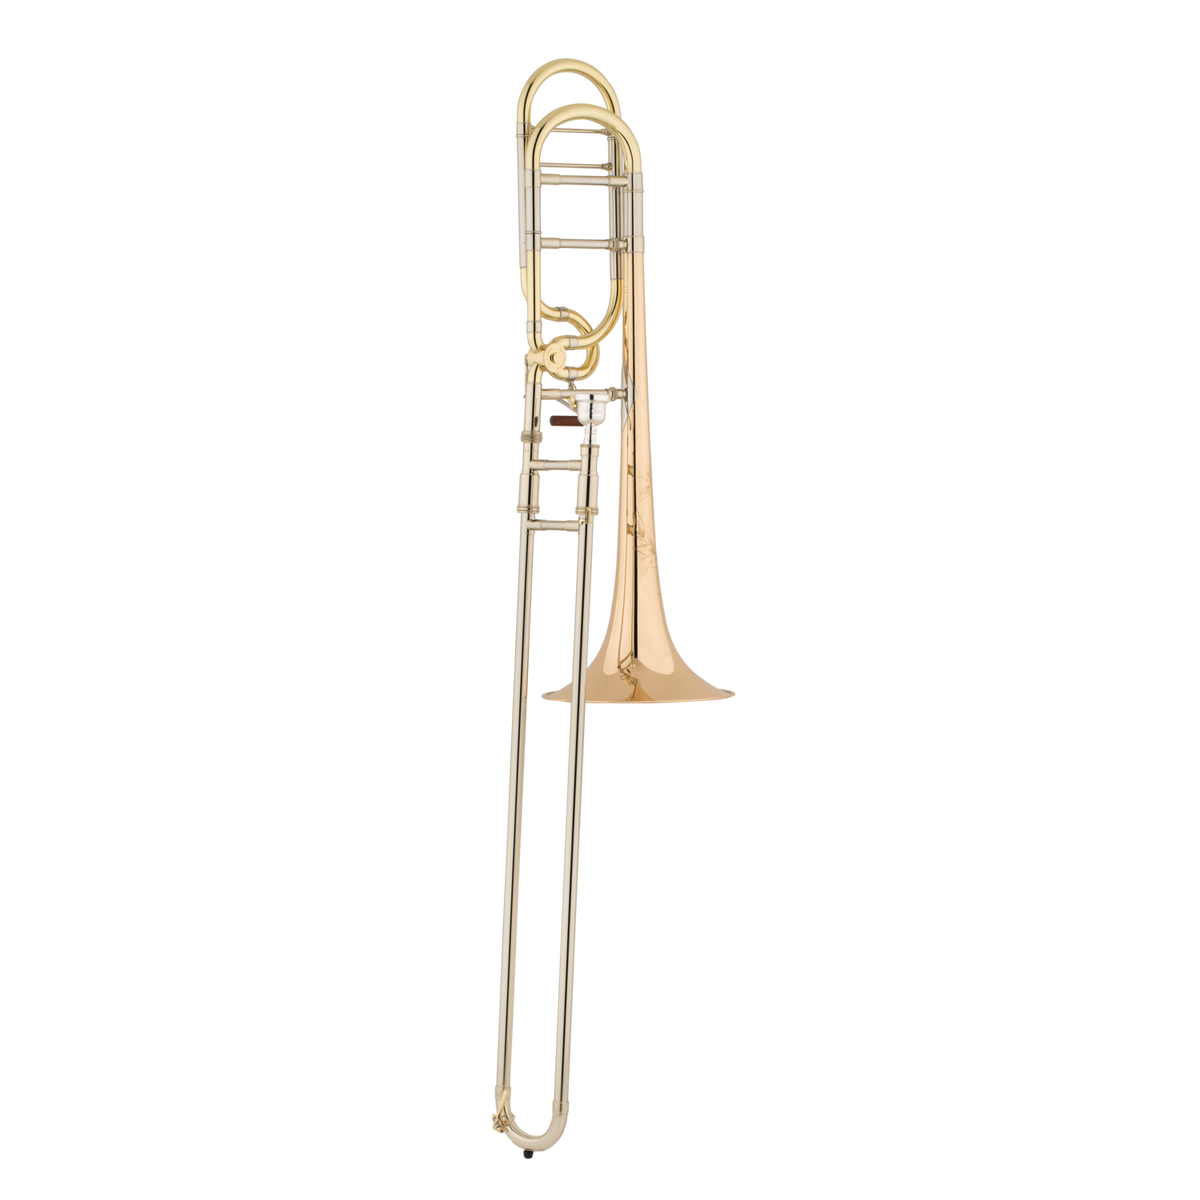 S.E. Shires - Model TBCH - Chicago Custom Bb/F Tenor Trombone-Trombone-S.E. Shires-Music Elements